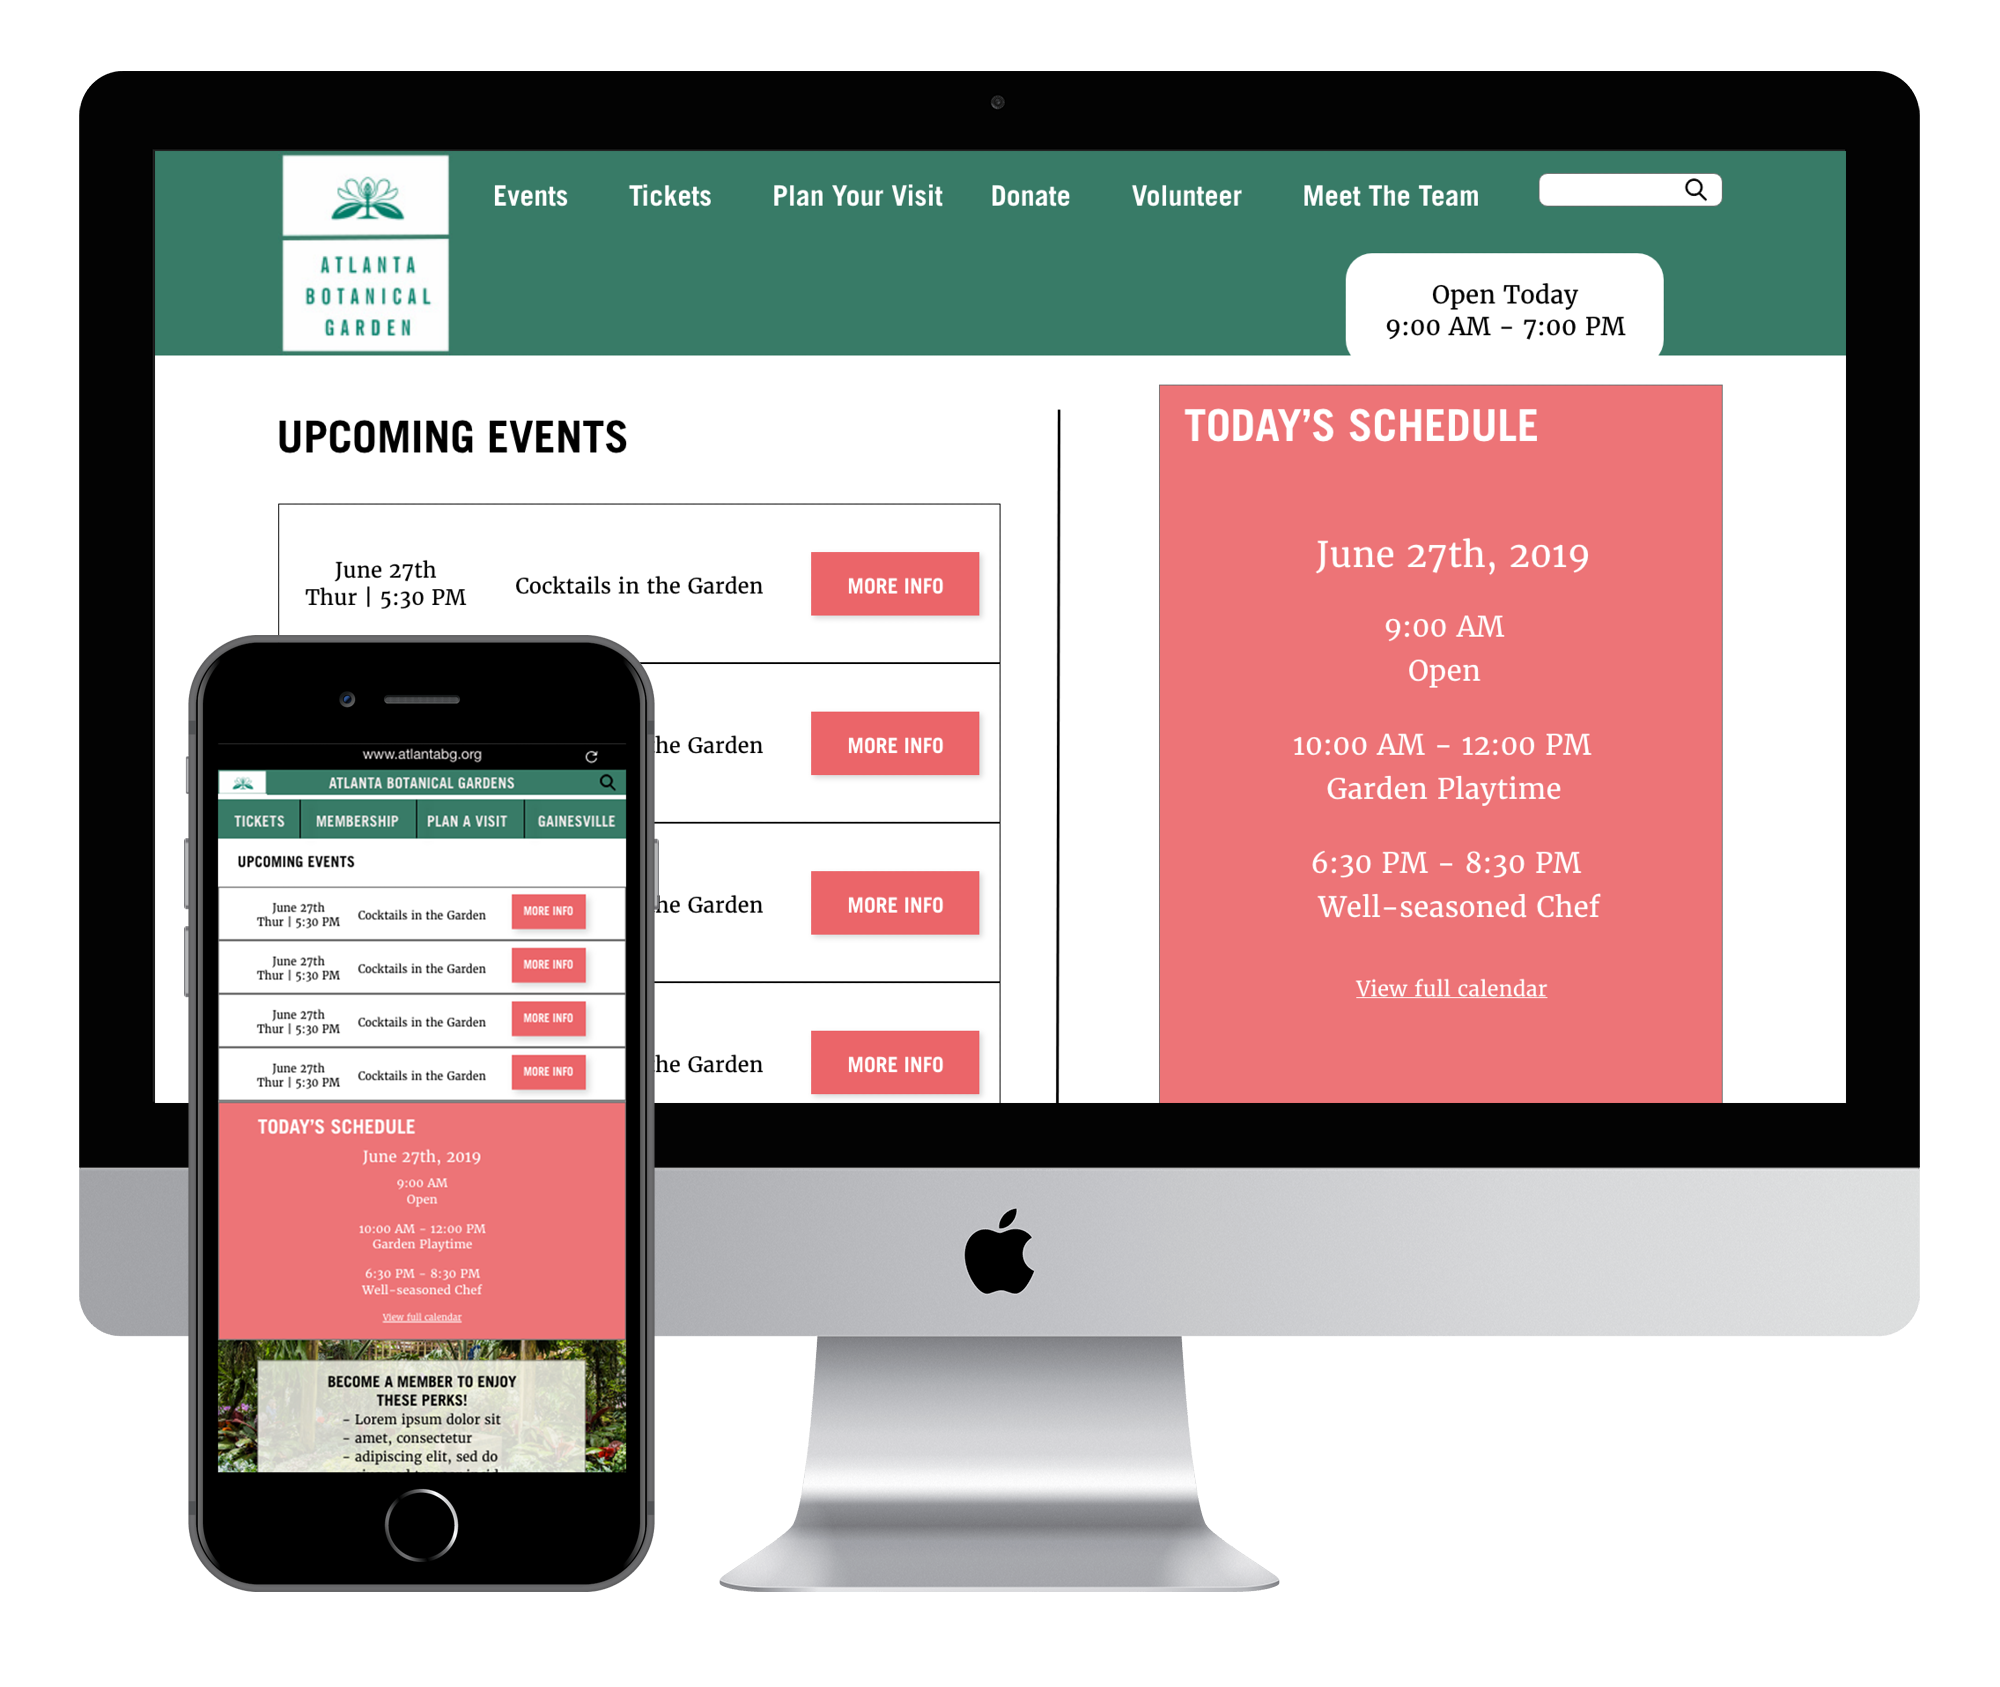 Atlanta Botanical Gardens Site Redesign - A 2-week group project to redesign the website for the gardens and make the site mobile responsive.